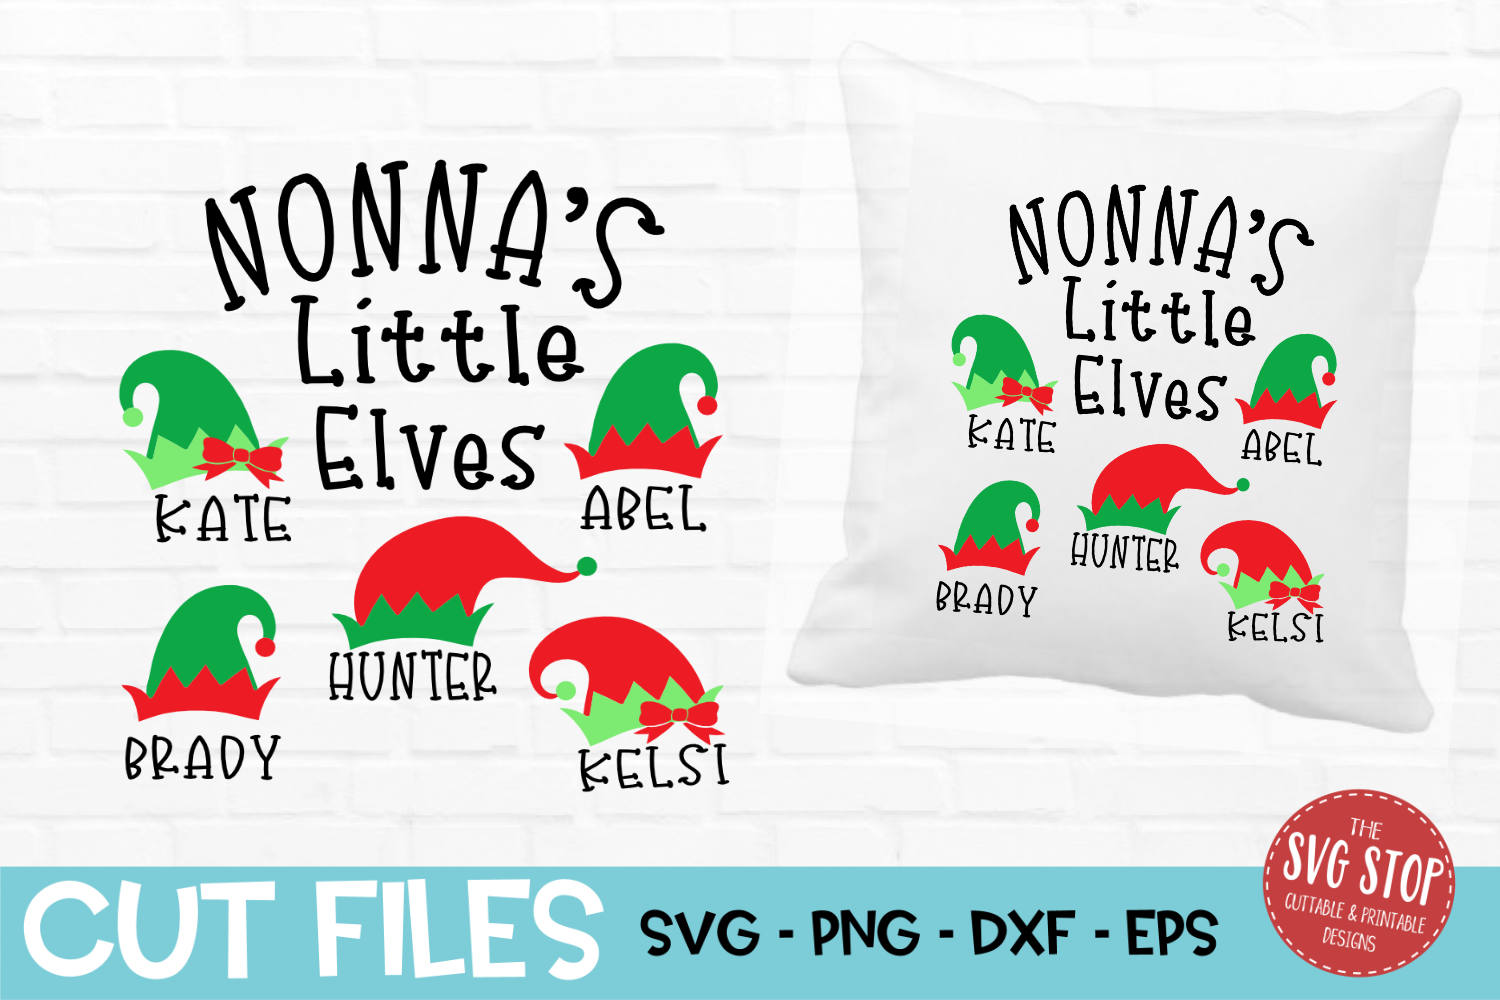 Nonna Little Elves Christmas SVG, PNG, DXF, EPS example image 1